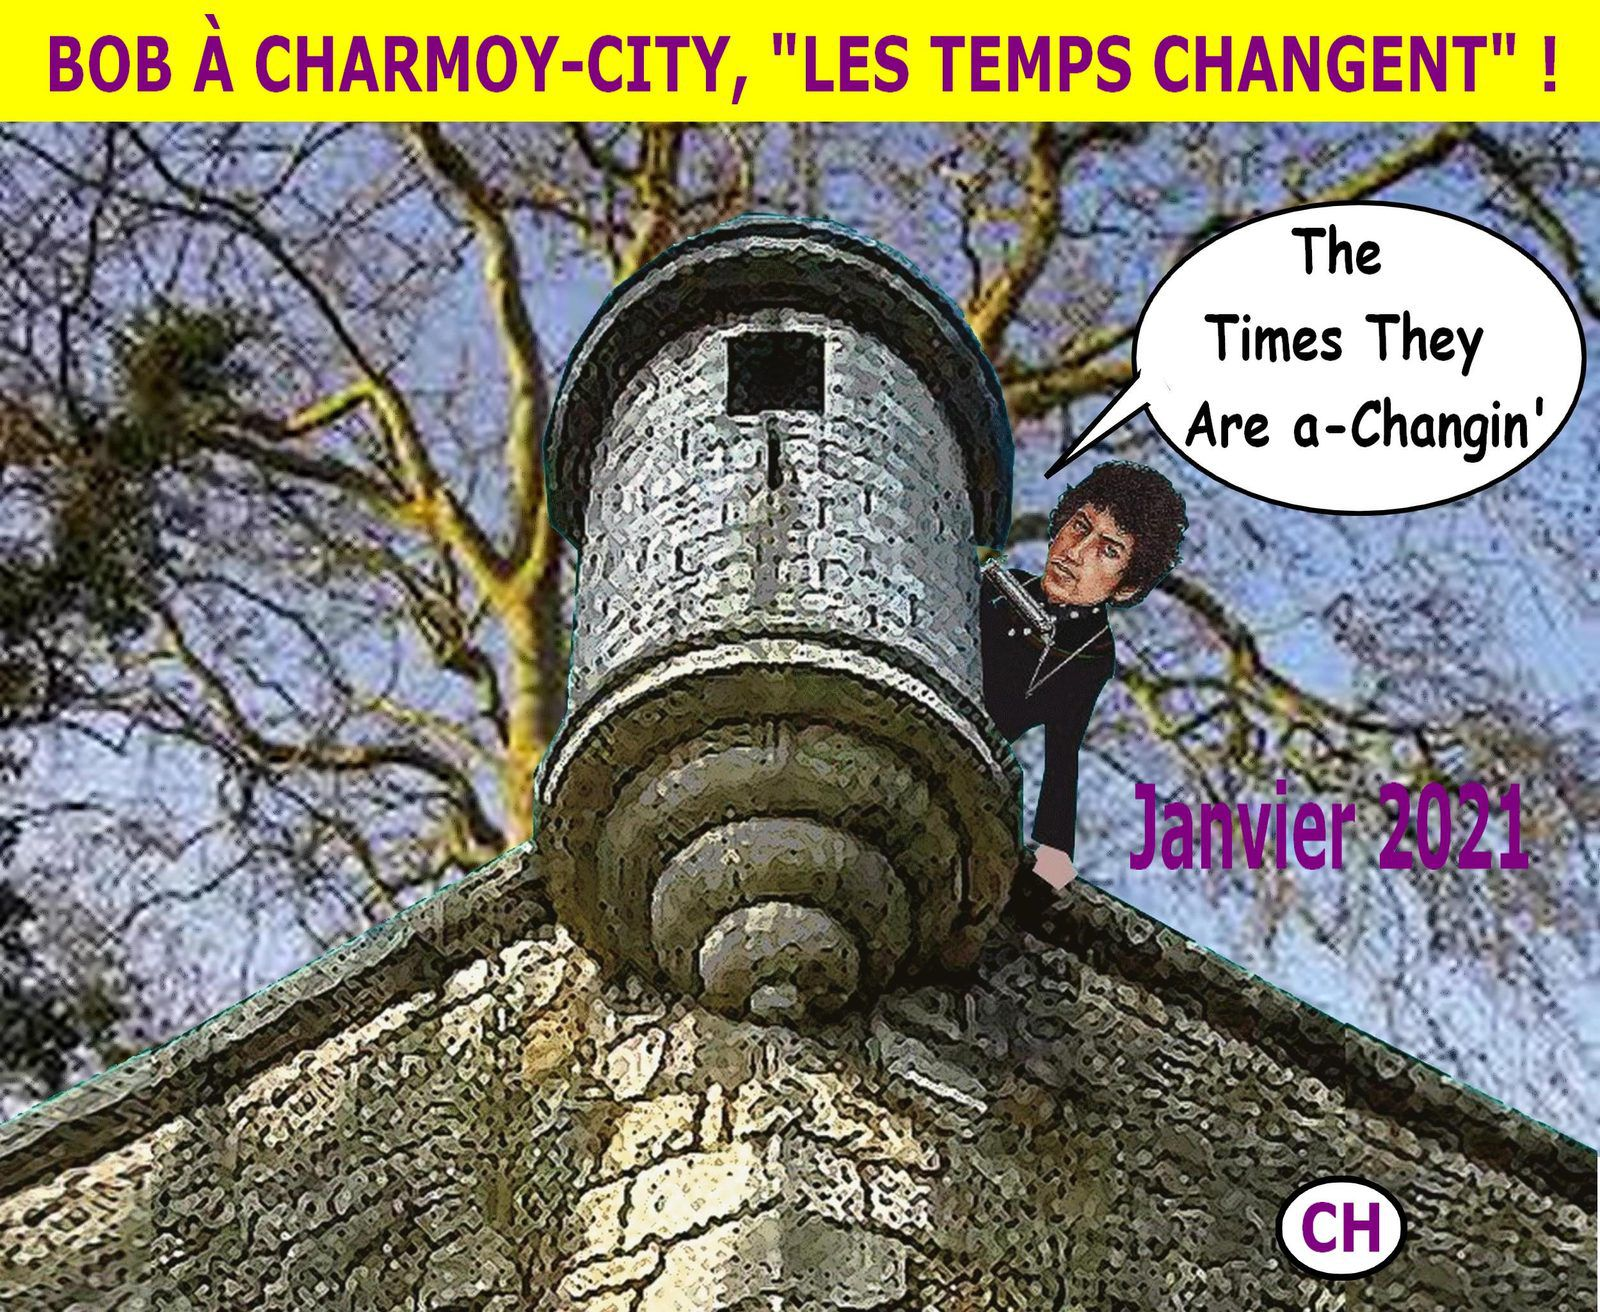 Bob à Charmoy-City, les temps changent .jpg